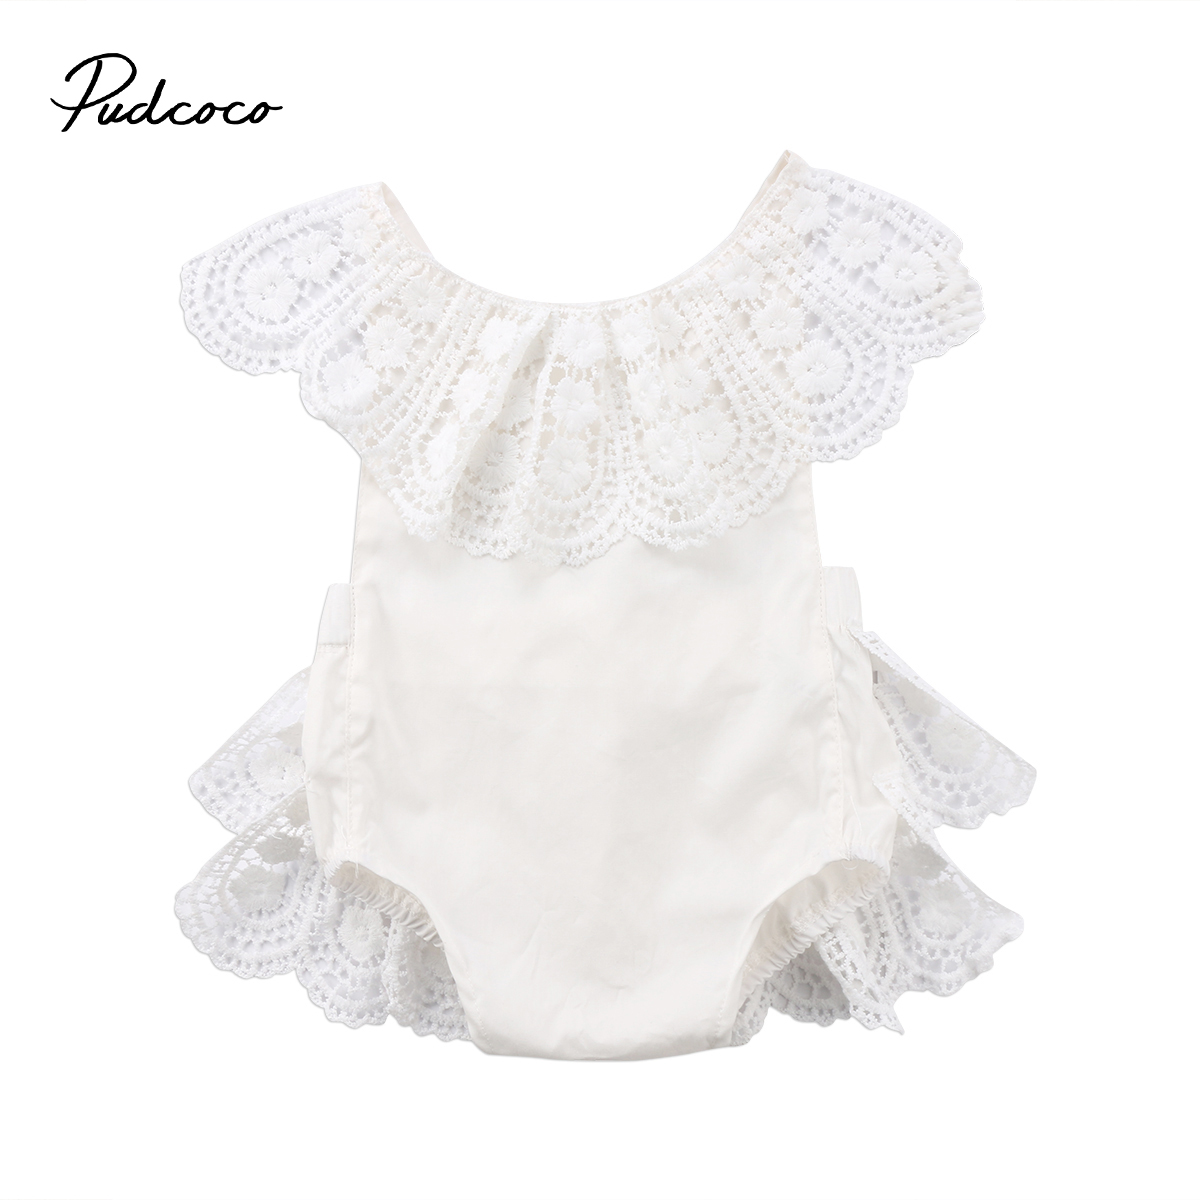 Pudcoco Newborn Baby Girls Lace Ruffle Romper Cotton White Backless Jumpsuit Outfits Sunsuit Summer Toddler Girls Clothing pudcoco newborn baby girl clothes 2017 summer sleeveless floral romper backless jumpsuit sunsuit children clothes